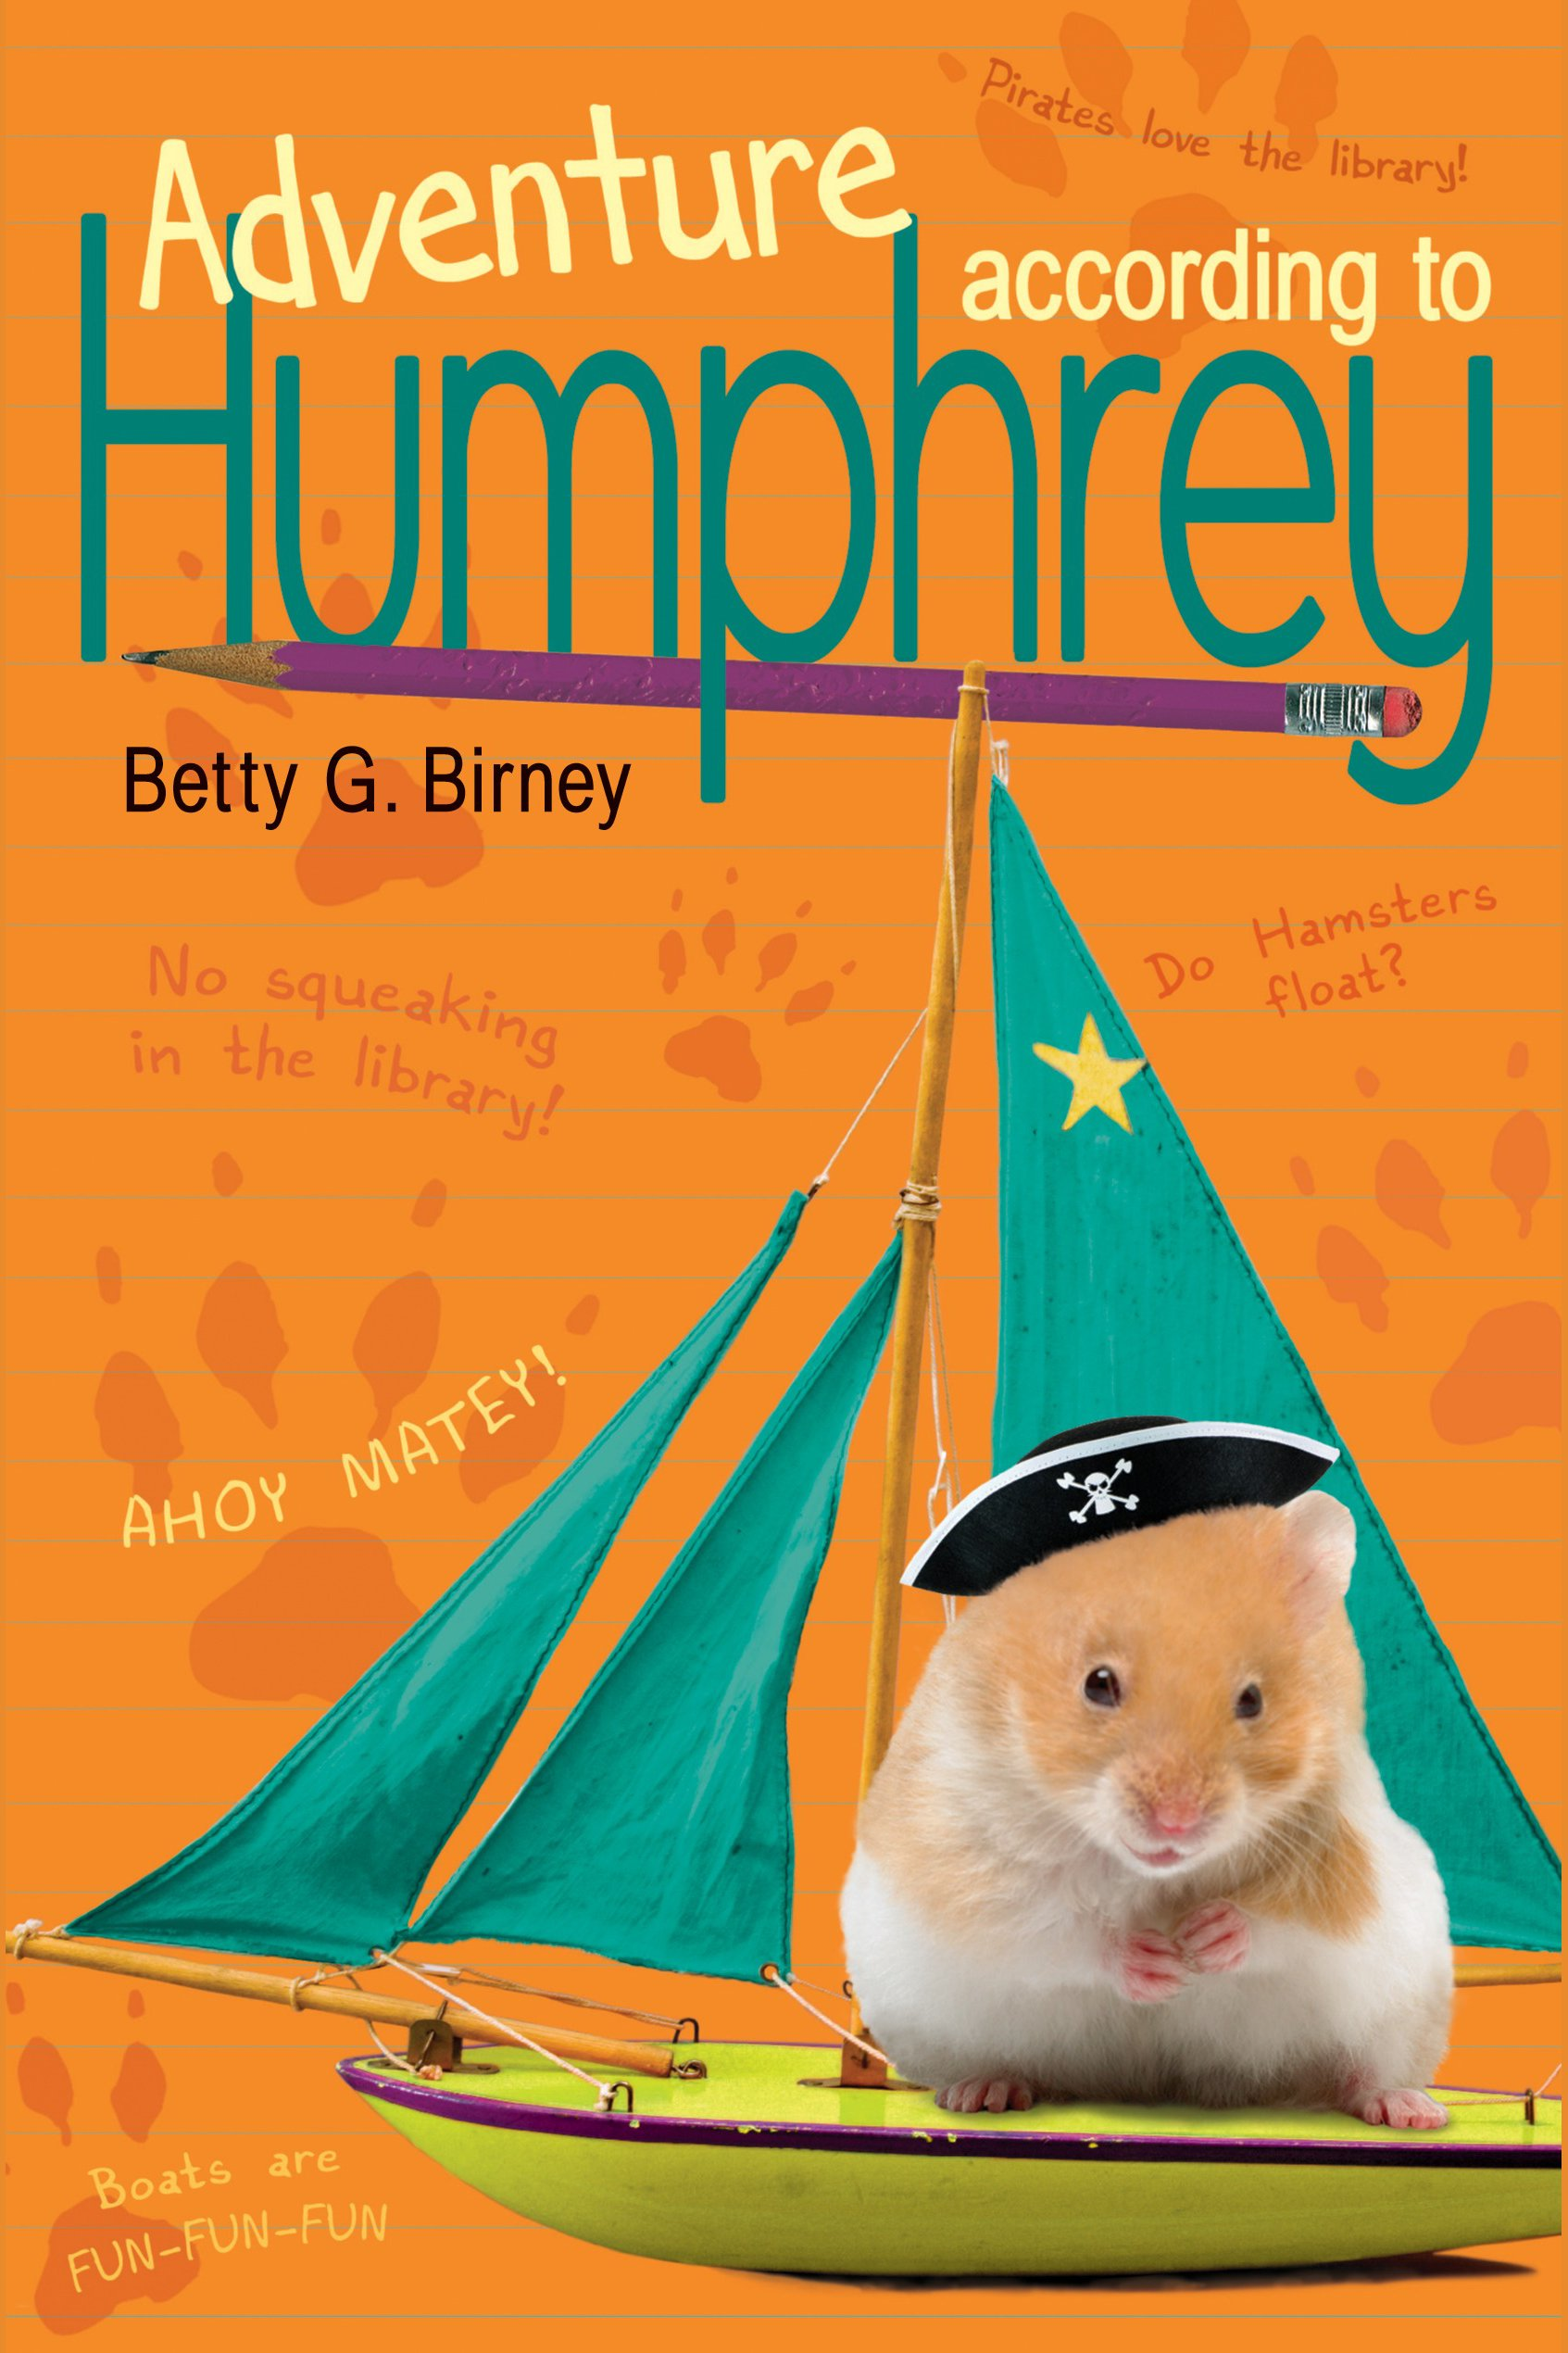 Adventure according to Humphrey cover image